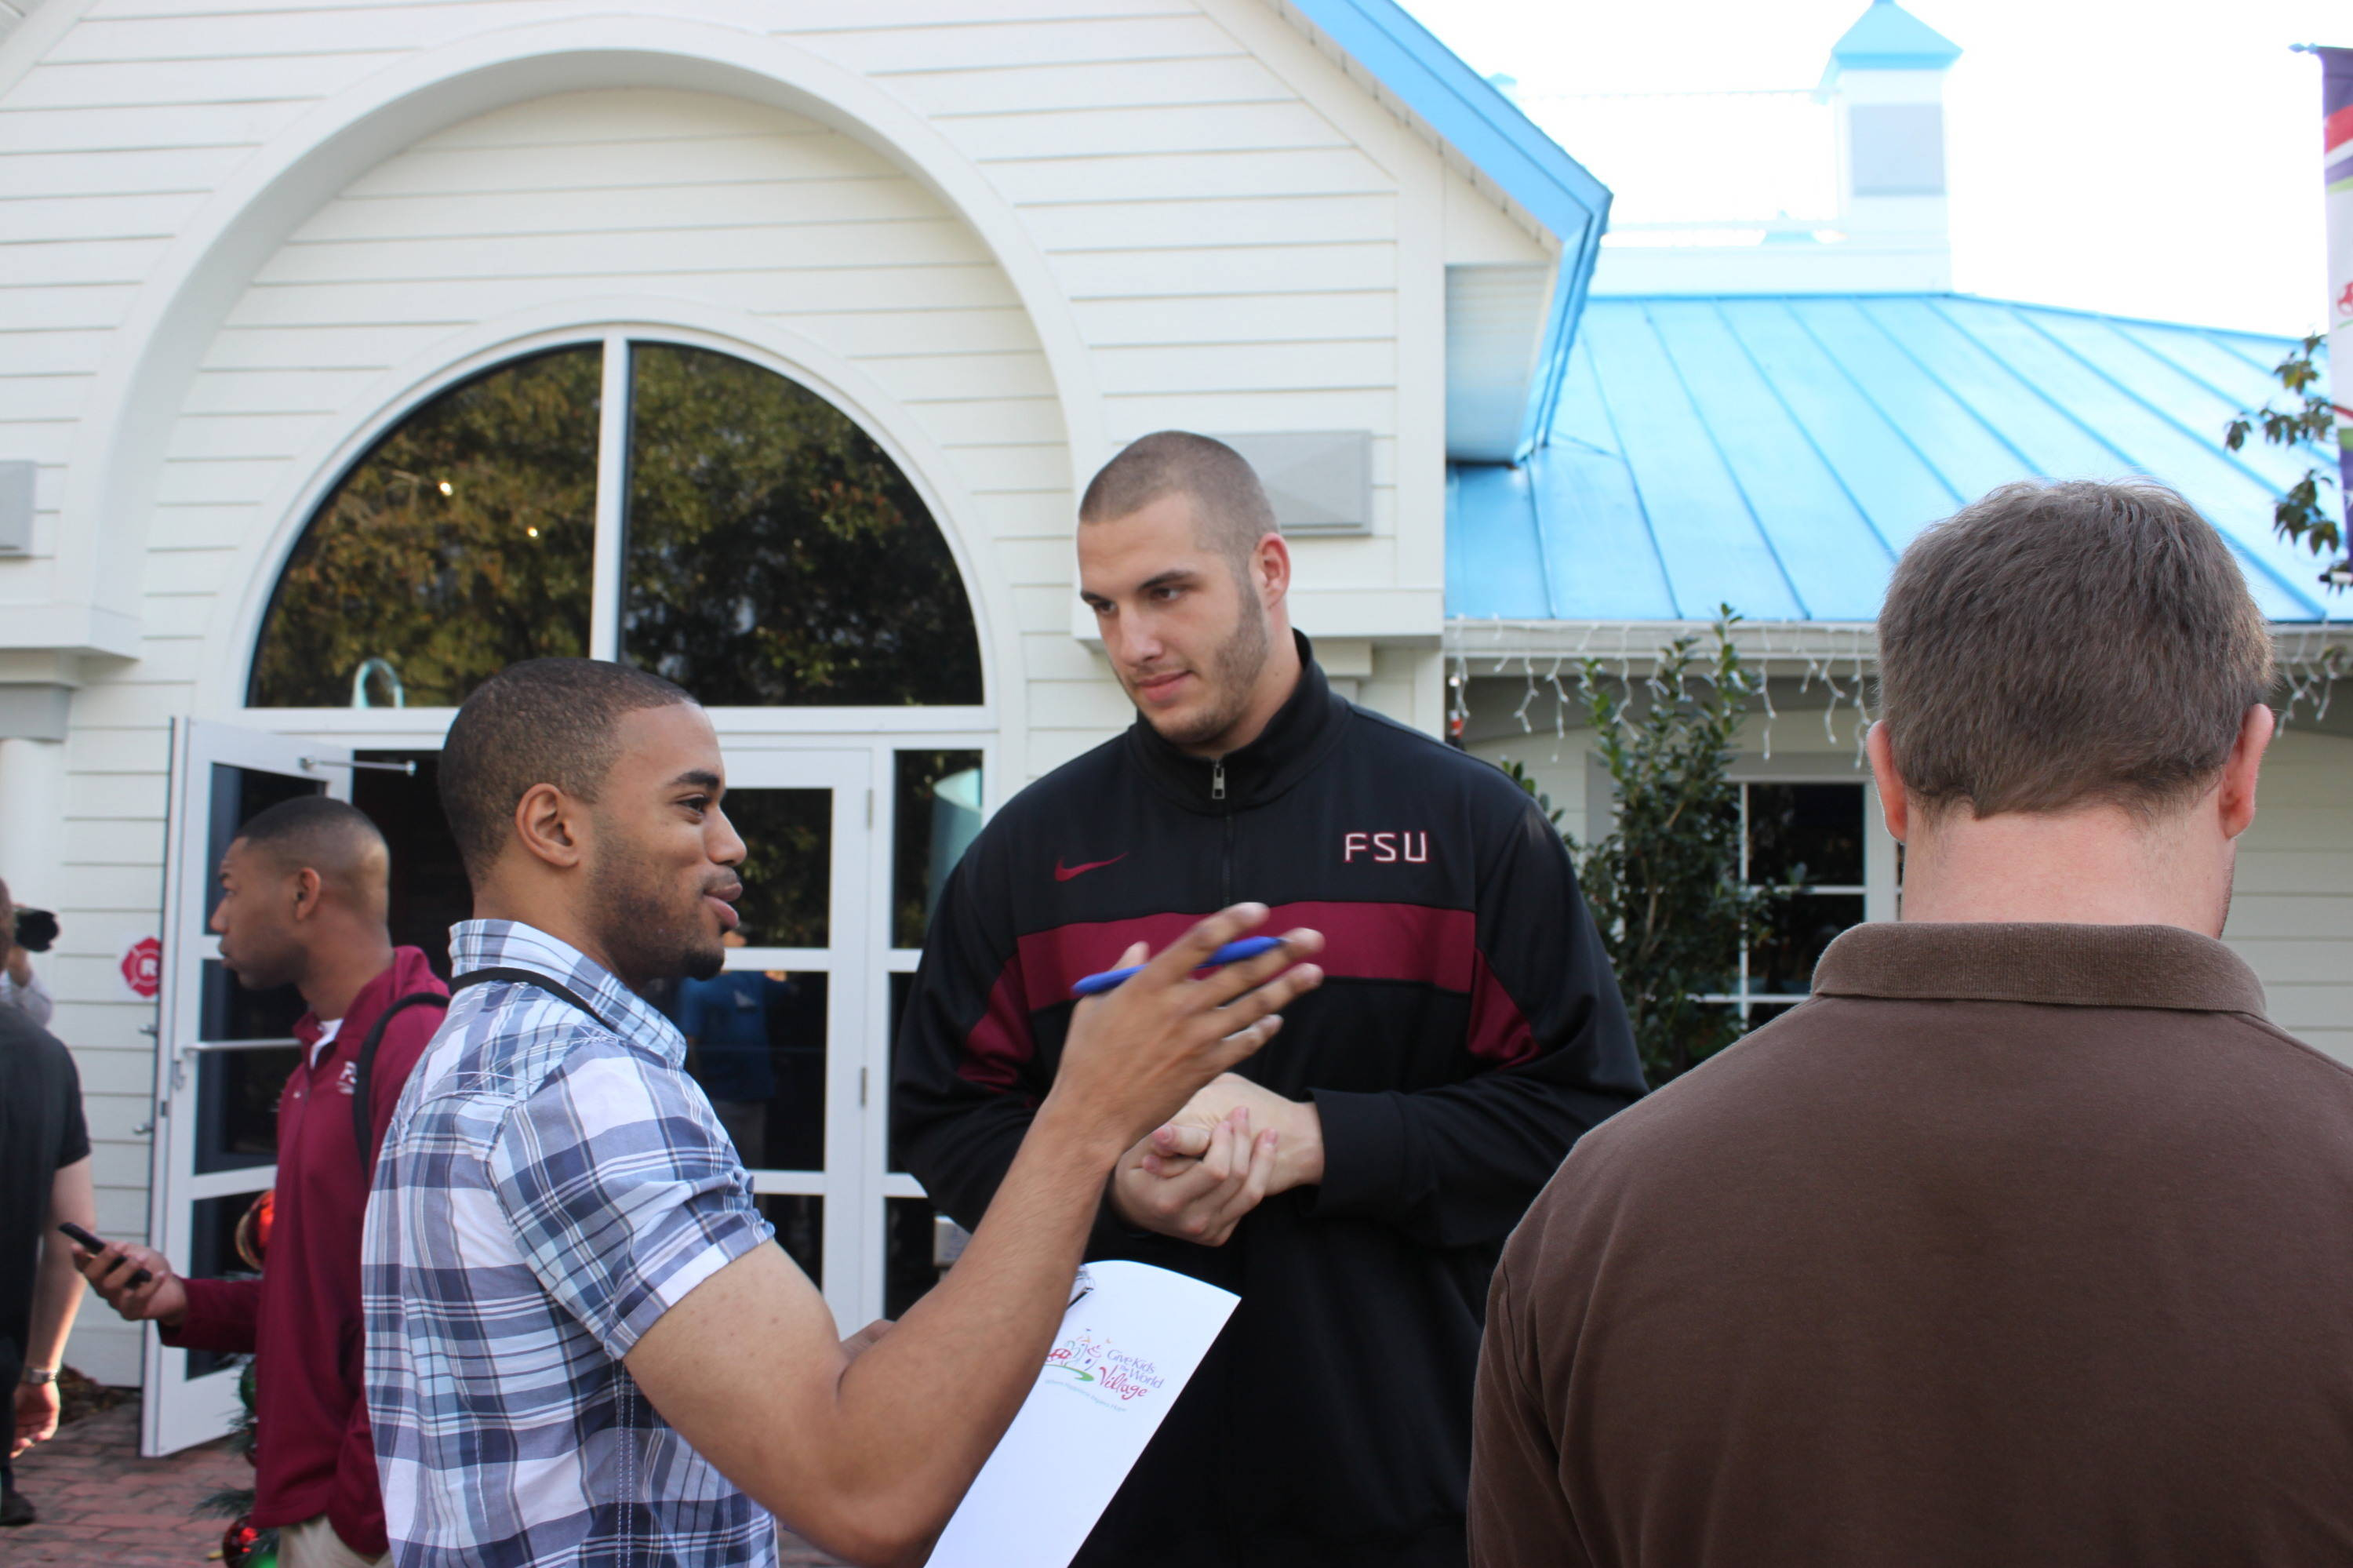 Defensive end Bjoern Werner tells a media member about the importance of sharing the day with young people.